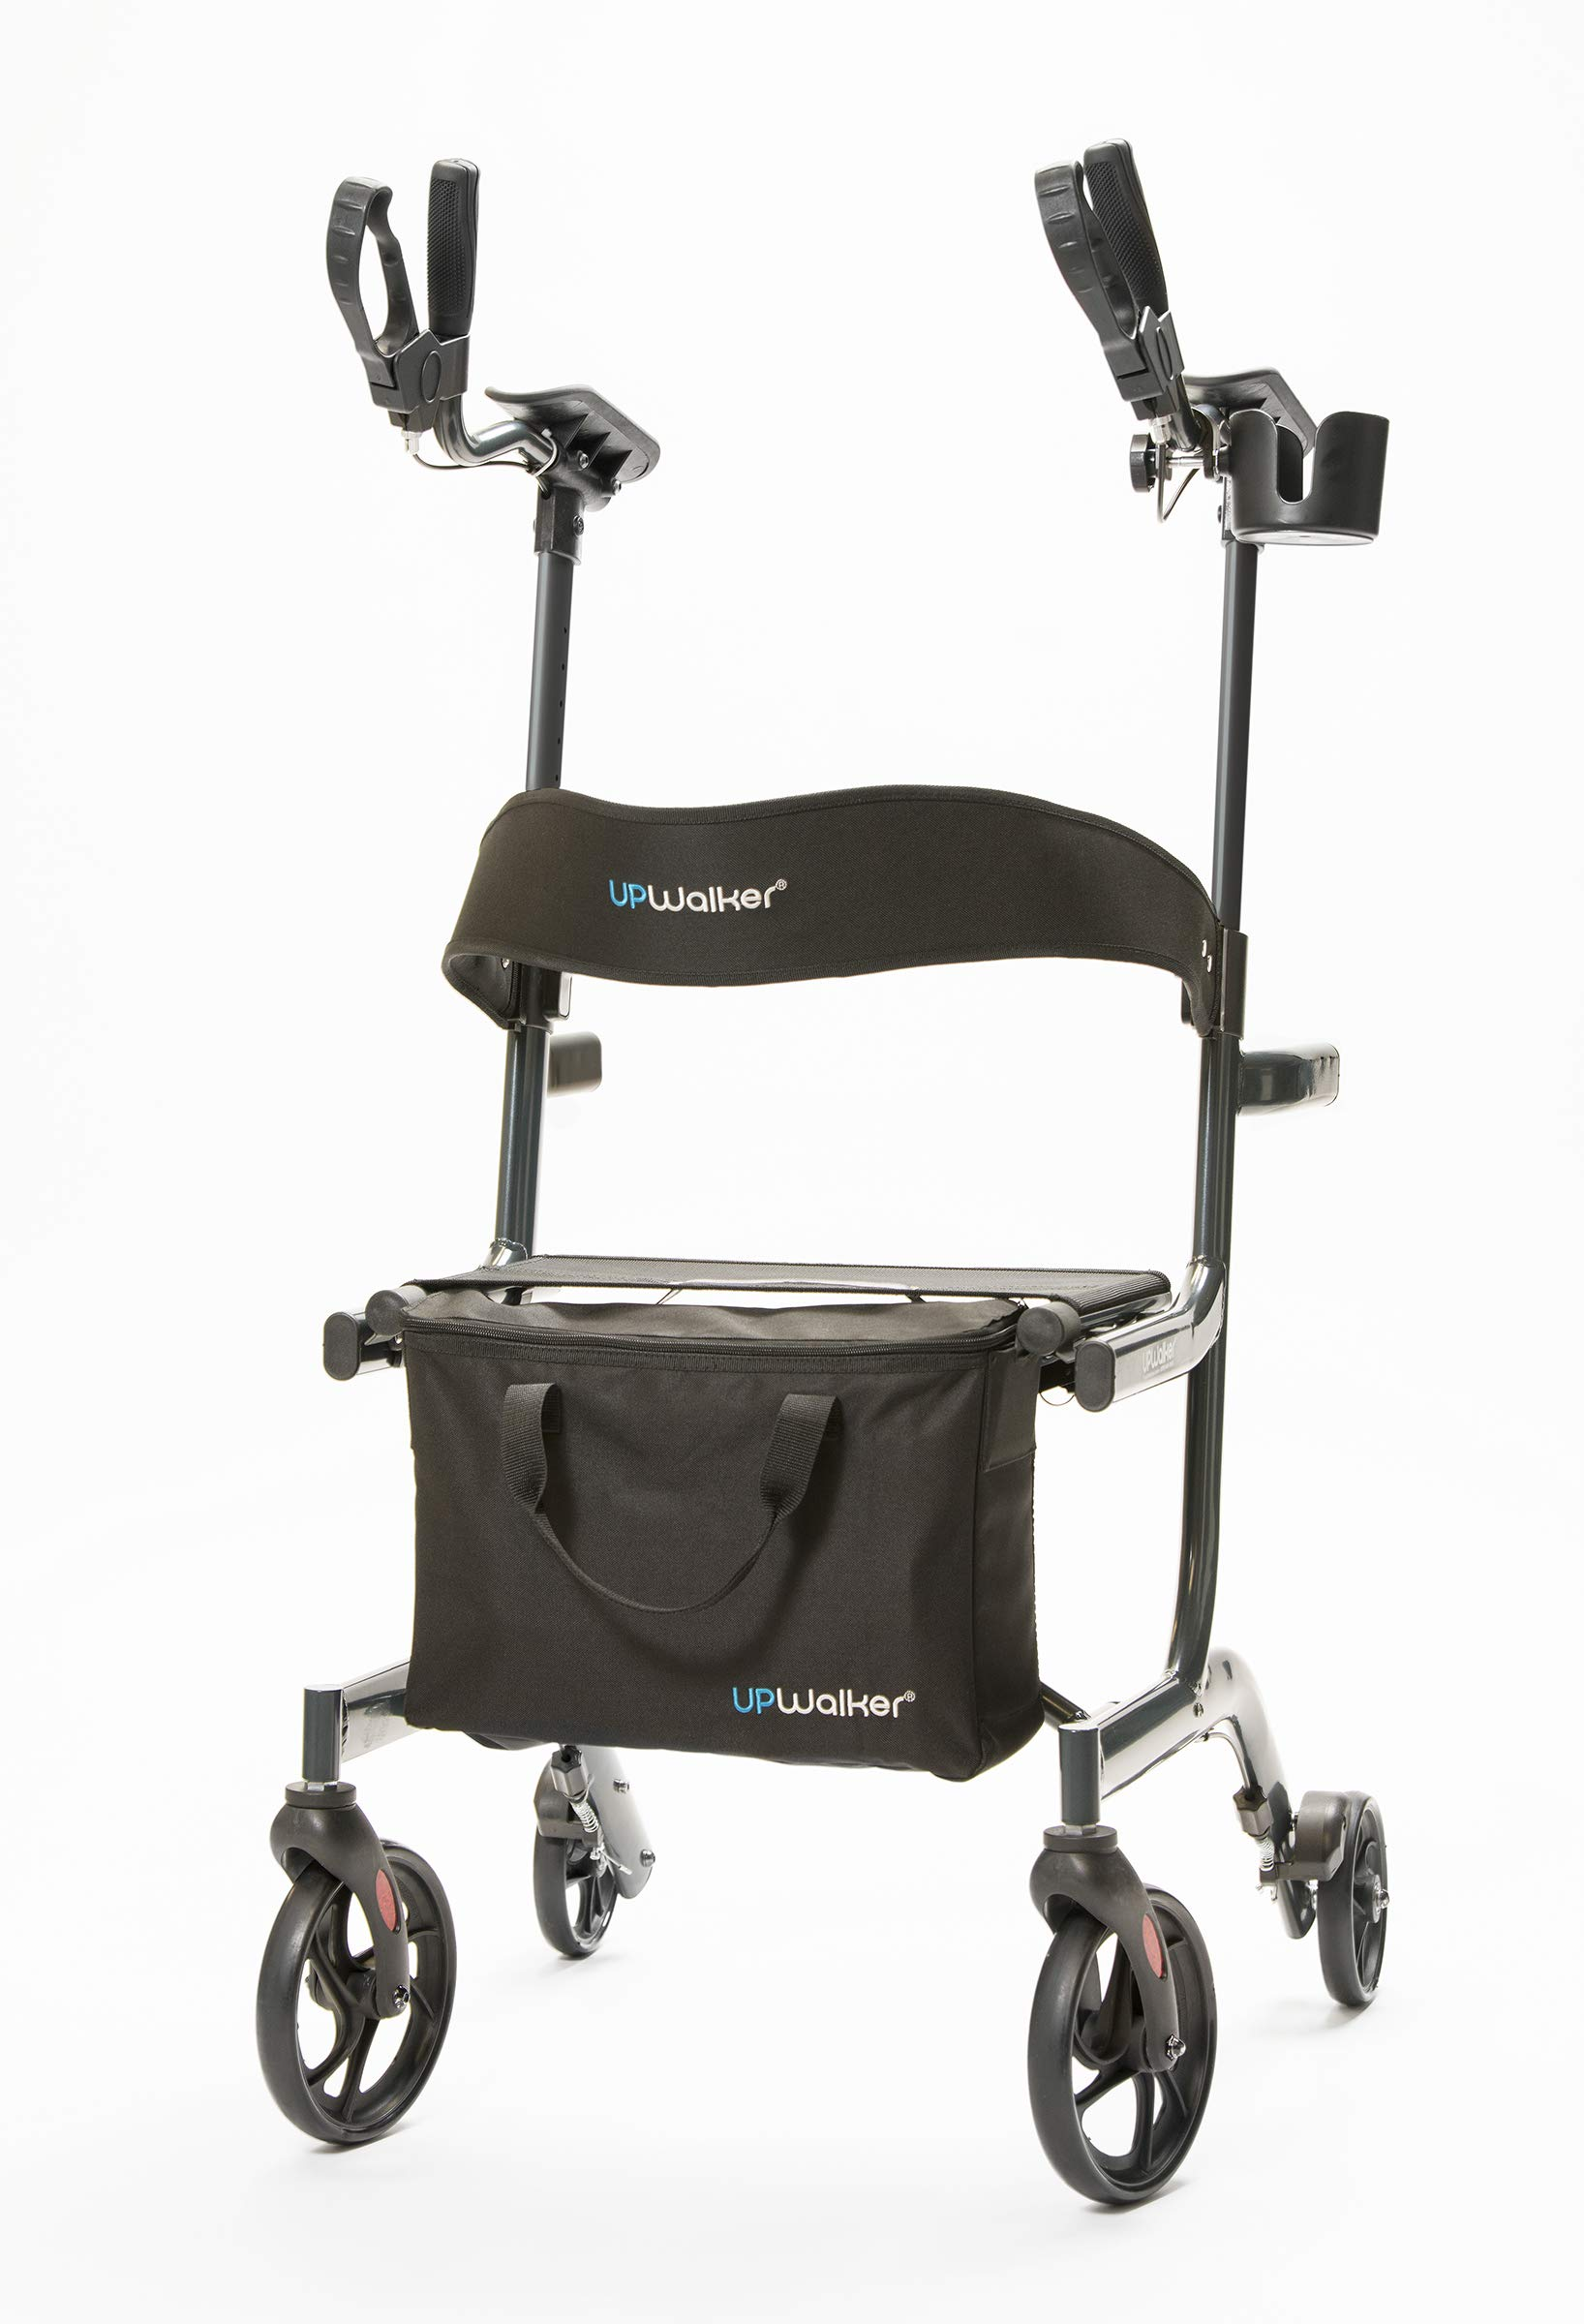 UPWalker Lite Original Upright Walker (Stand Up Rolling Mobility Walking Aid with Seat) by LifeWalker